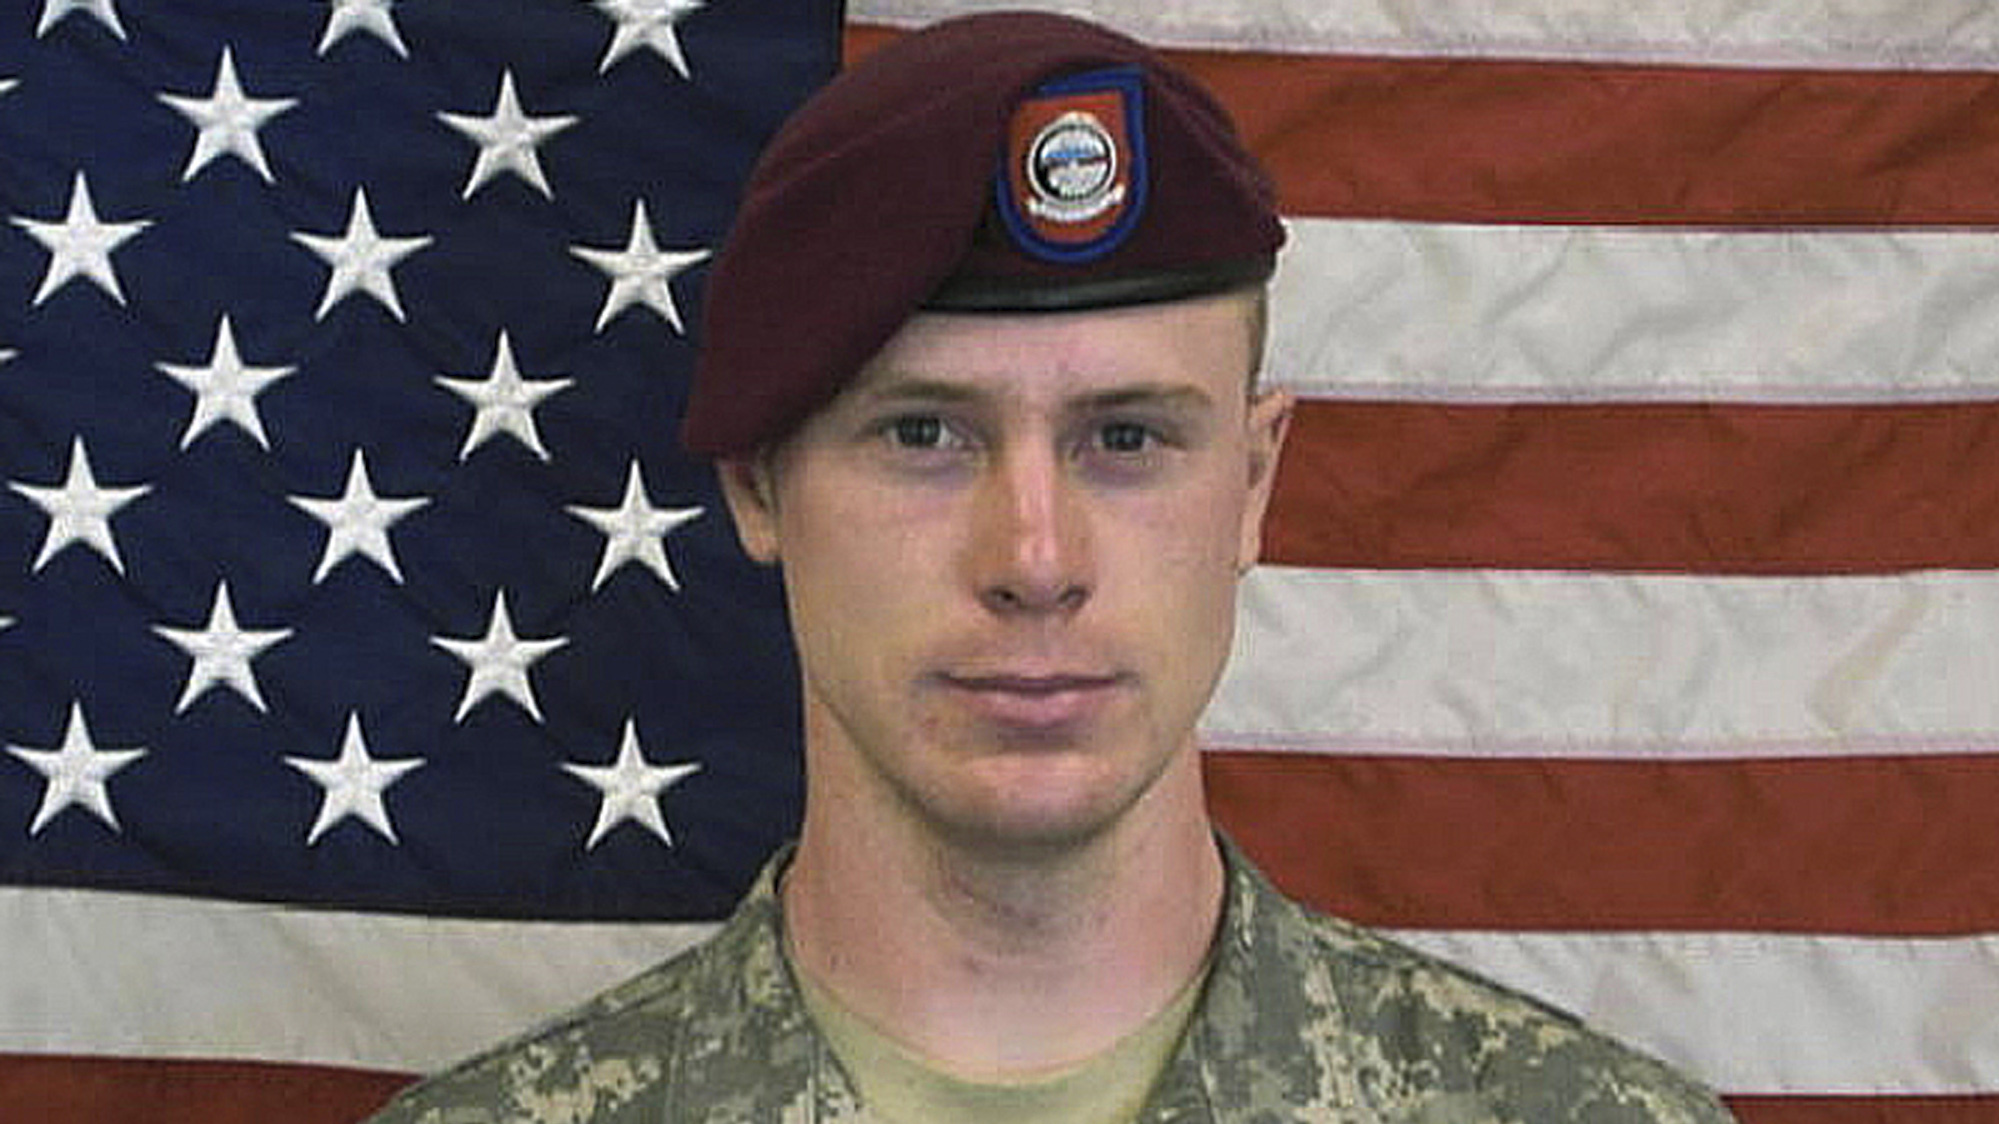 Sgt. Bowe Bergdahl faced a preliminary hearing in San Antonio last week. He faces a possible court martial for walking off his base in Afghanistan in 2009. An Army investigation produced a wealth of new information on his motivations. The major general who led the inquiry recommended against a prison sentence. Uncredited/AP